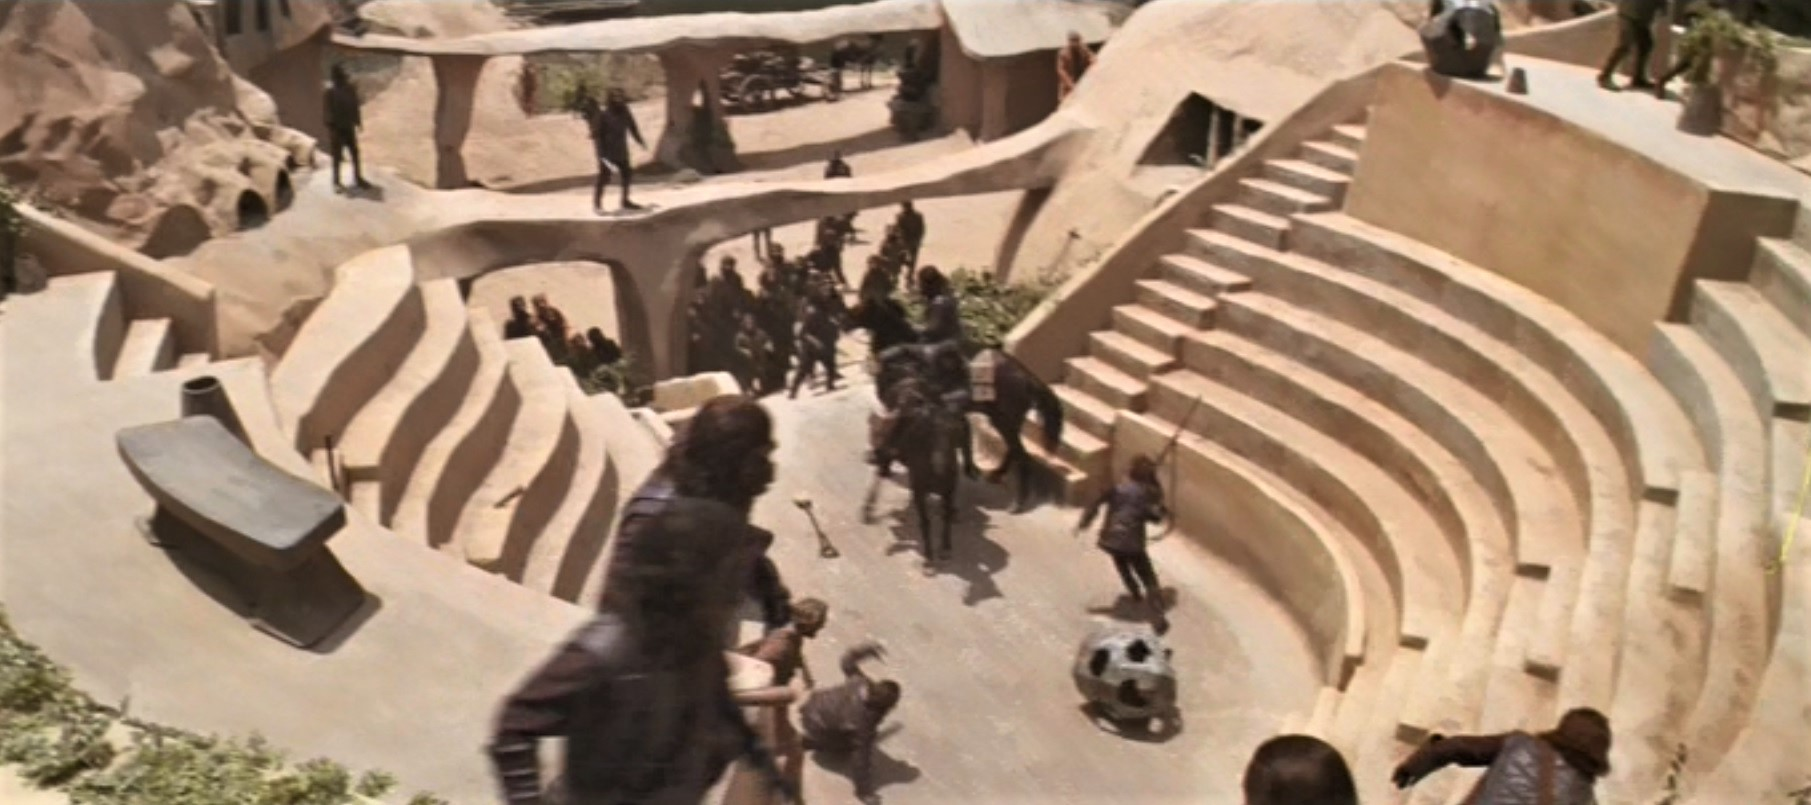 Planet of the Apes Set Amphitheater